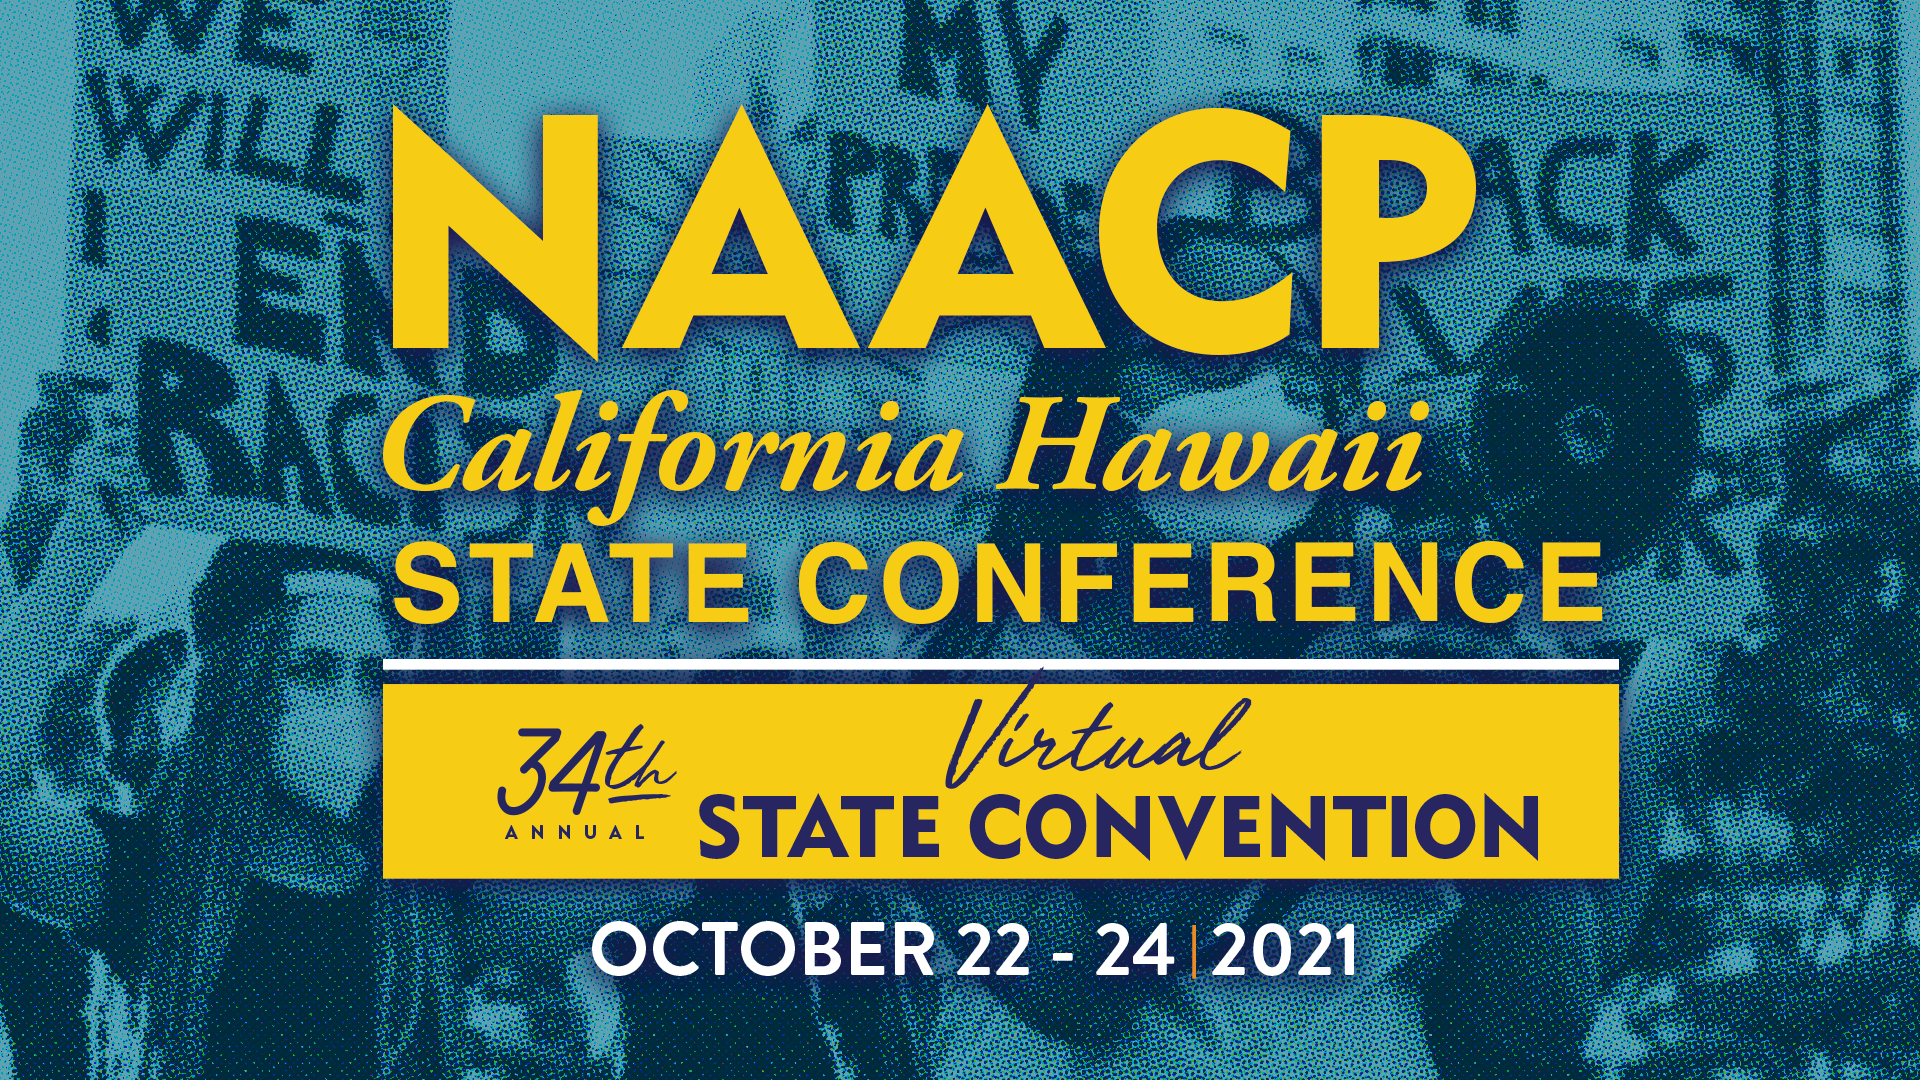 California Hawaii NAACP State Conference Annual Convention